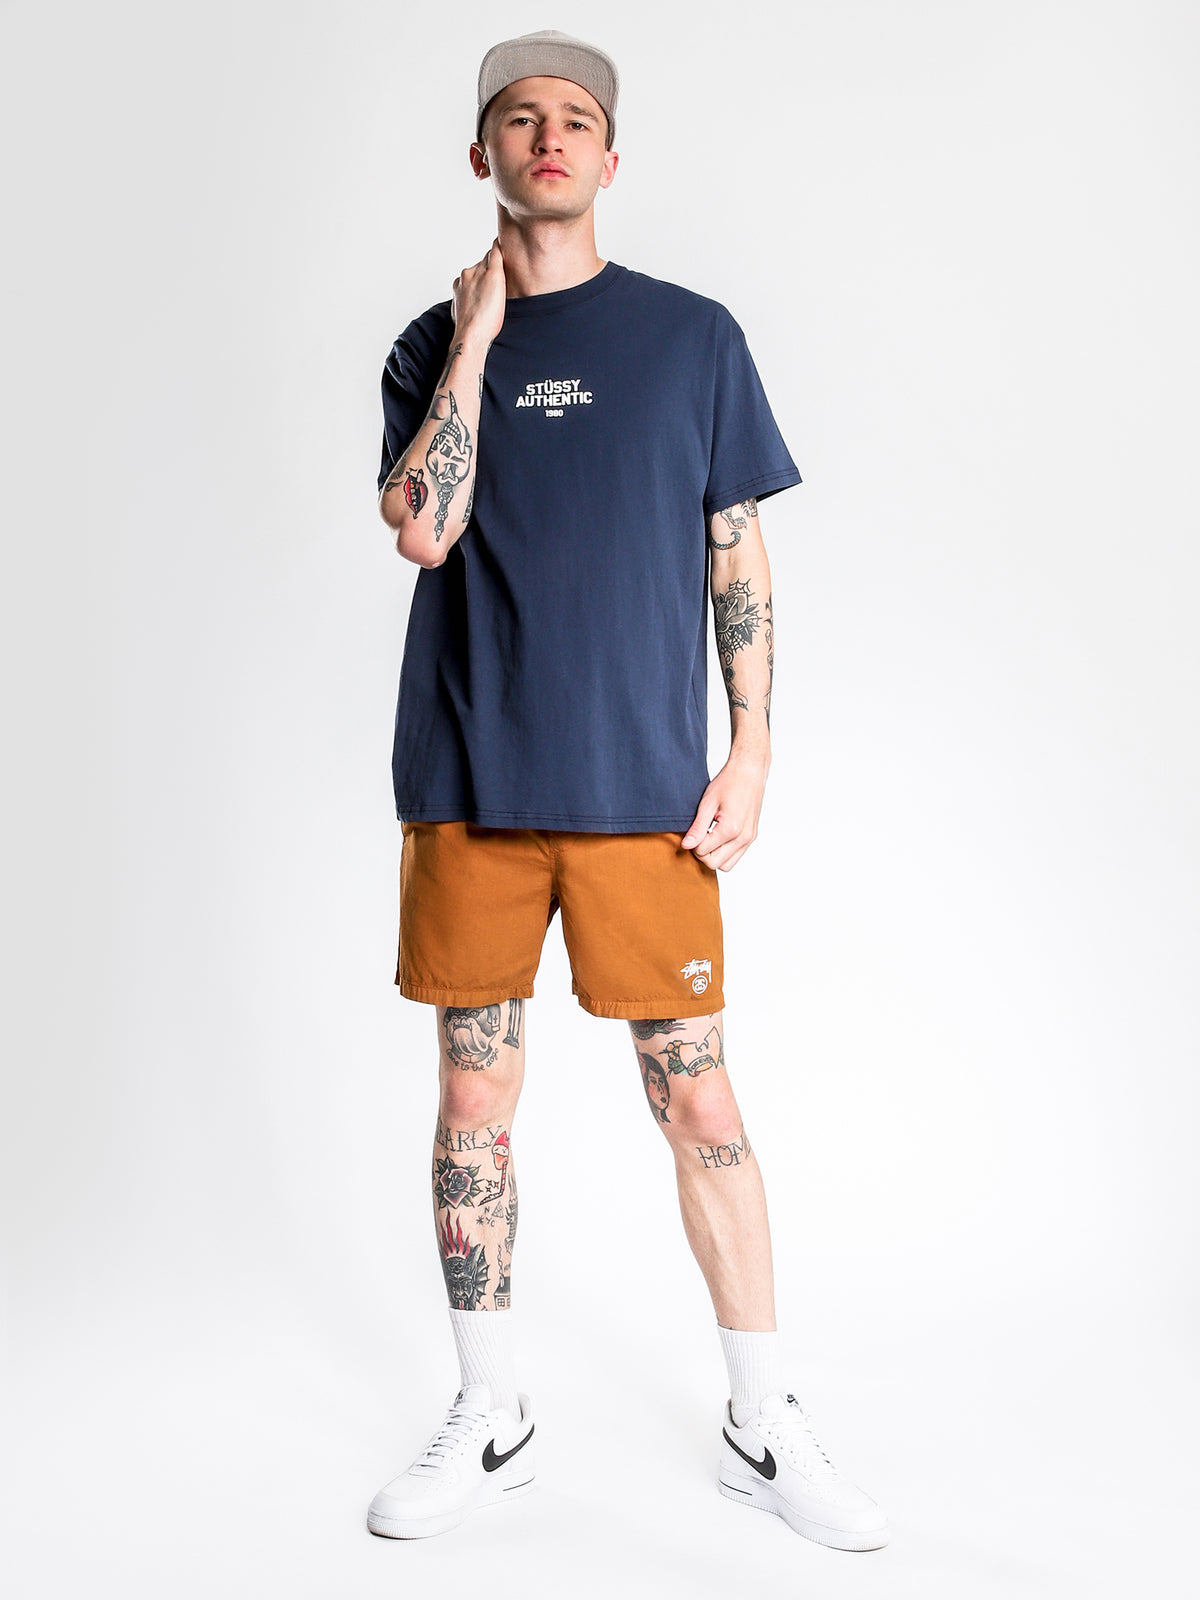 Authentic Short Sleeve T-Shirt in Navy